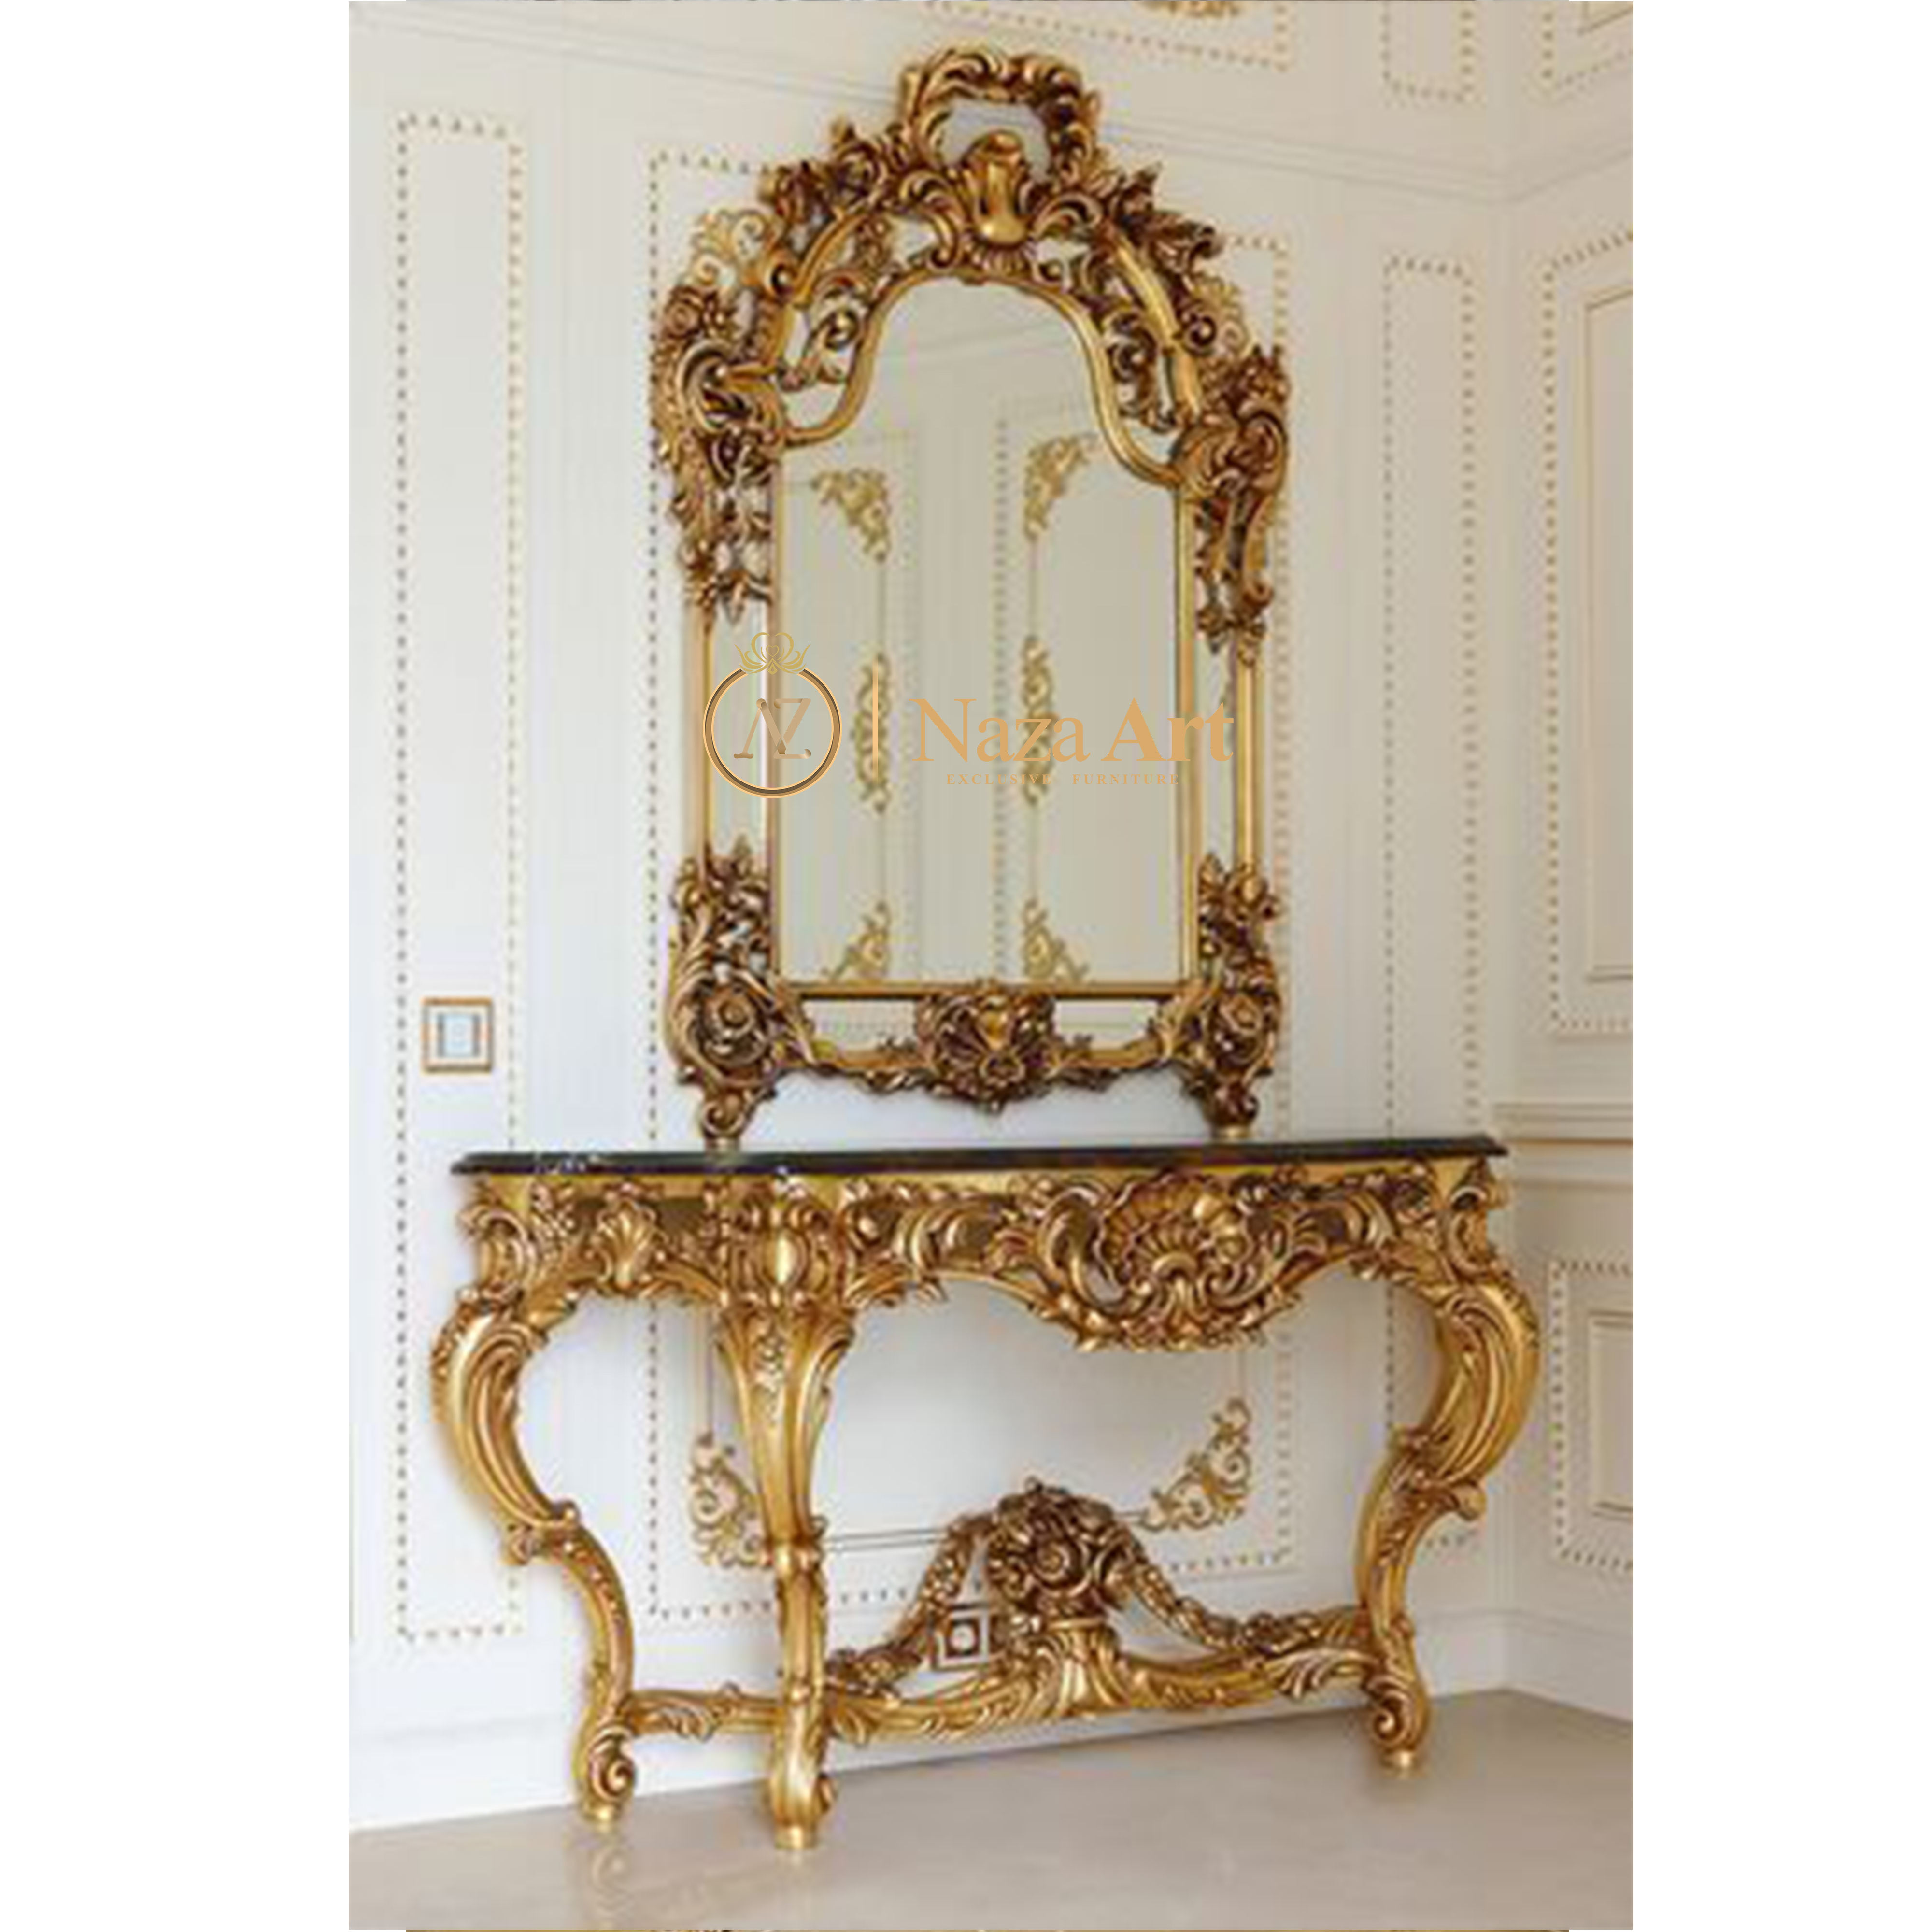 Antique Gold Classic Console Table With Wooden Mirror Italian Carving Wood Tables For Living Room